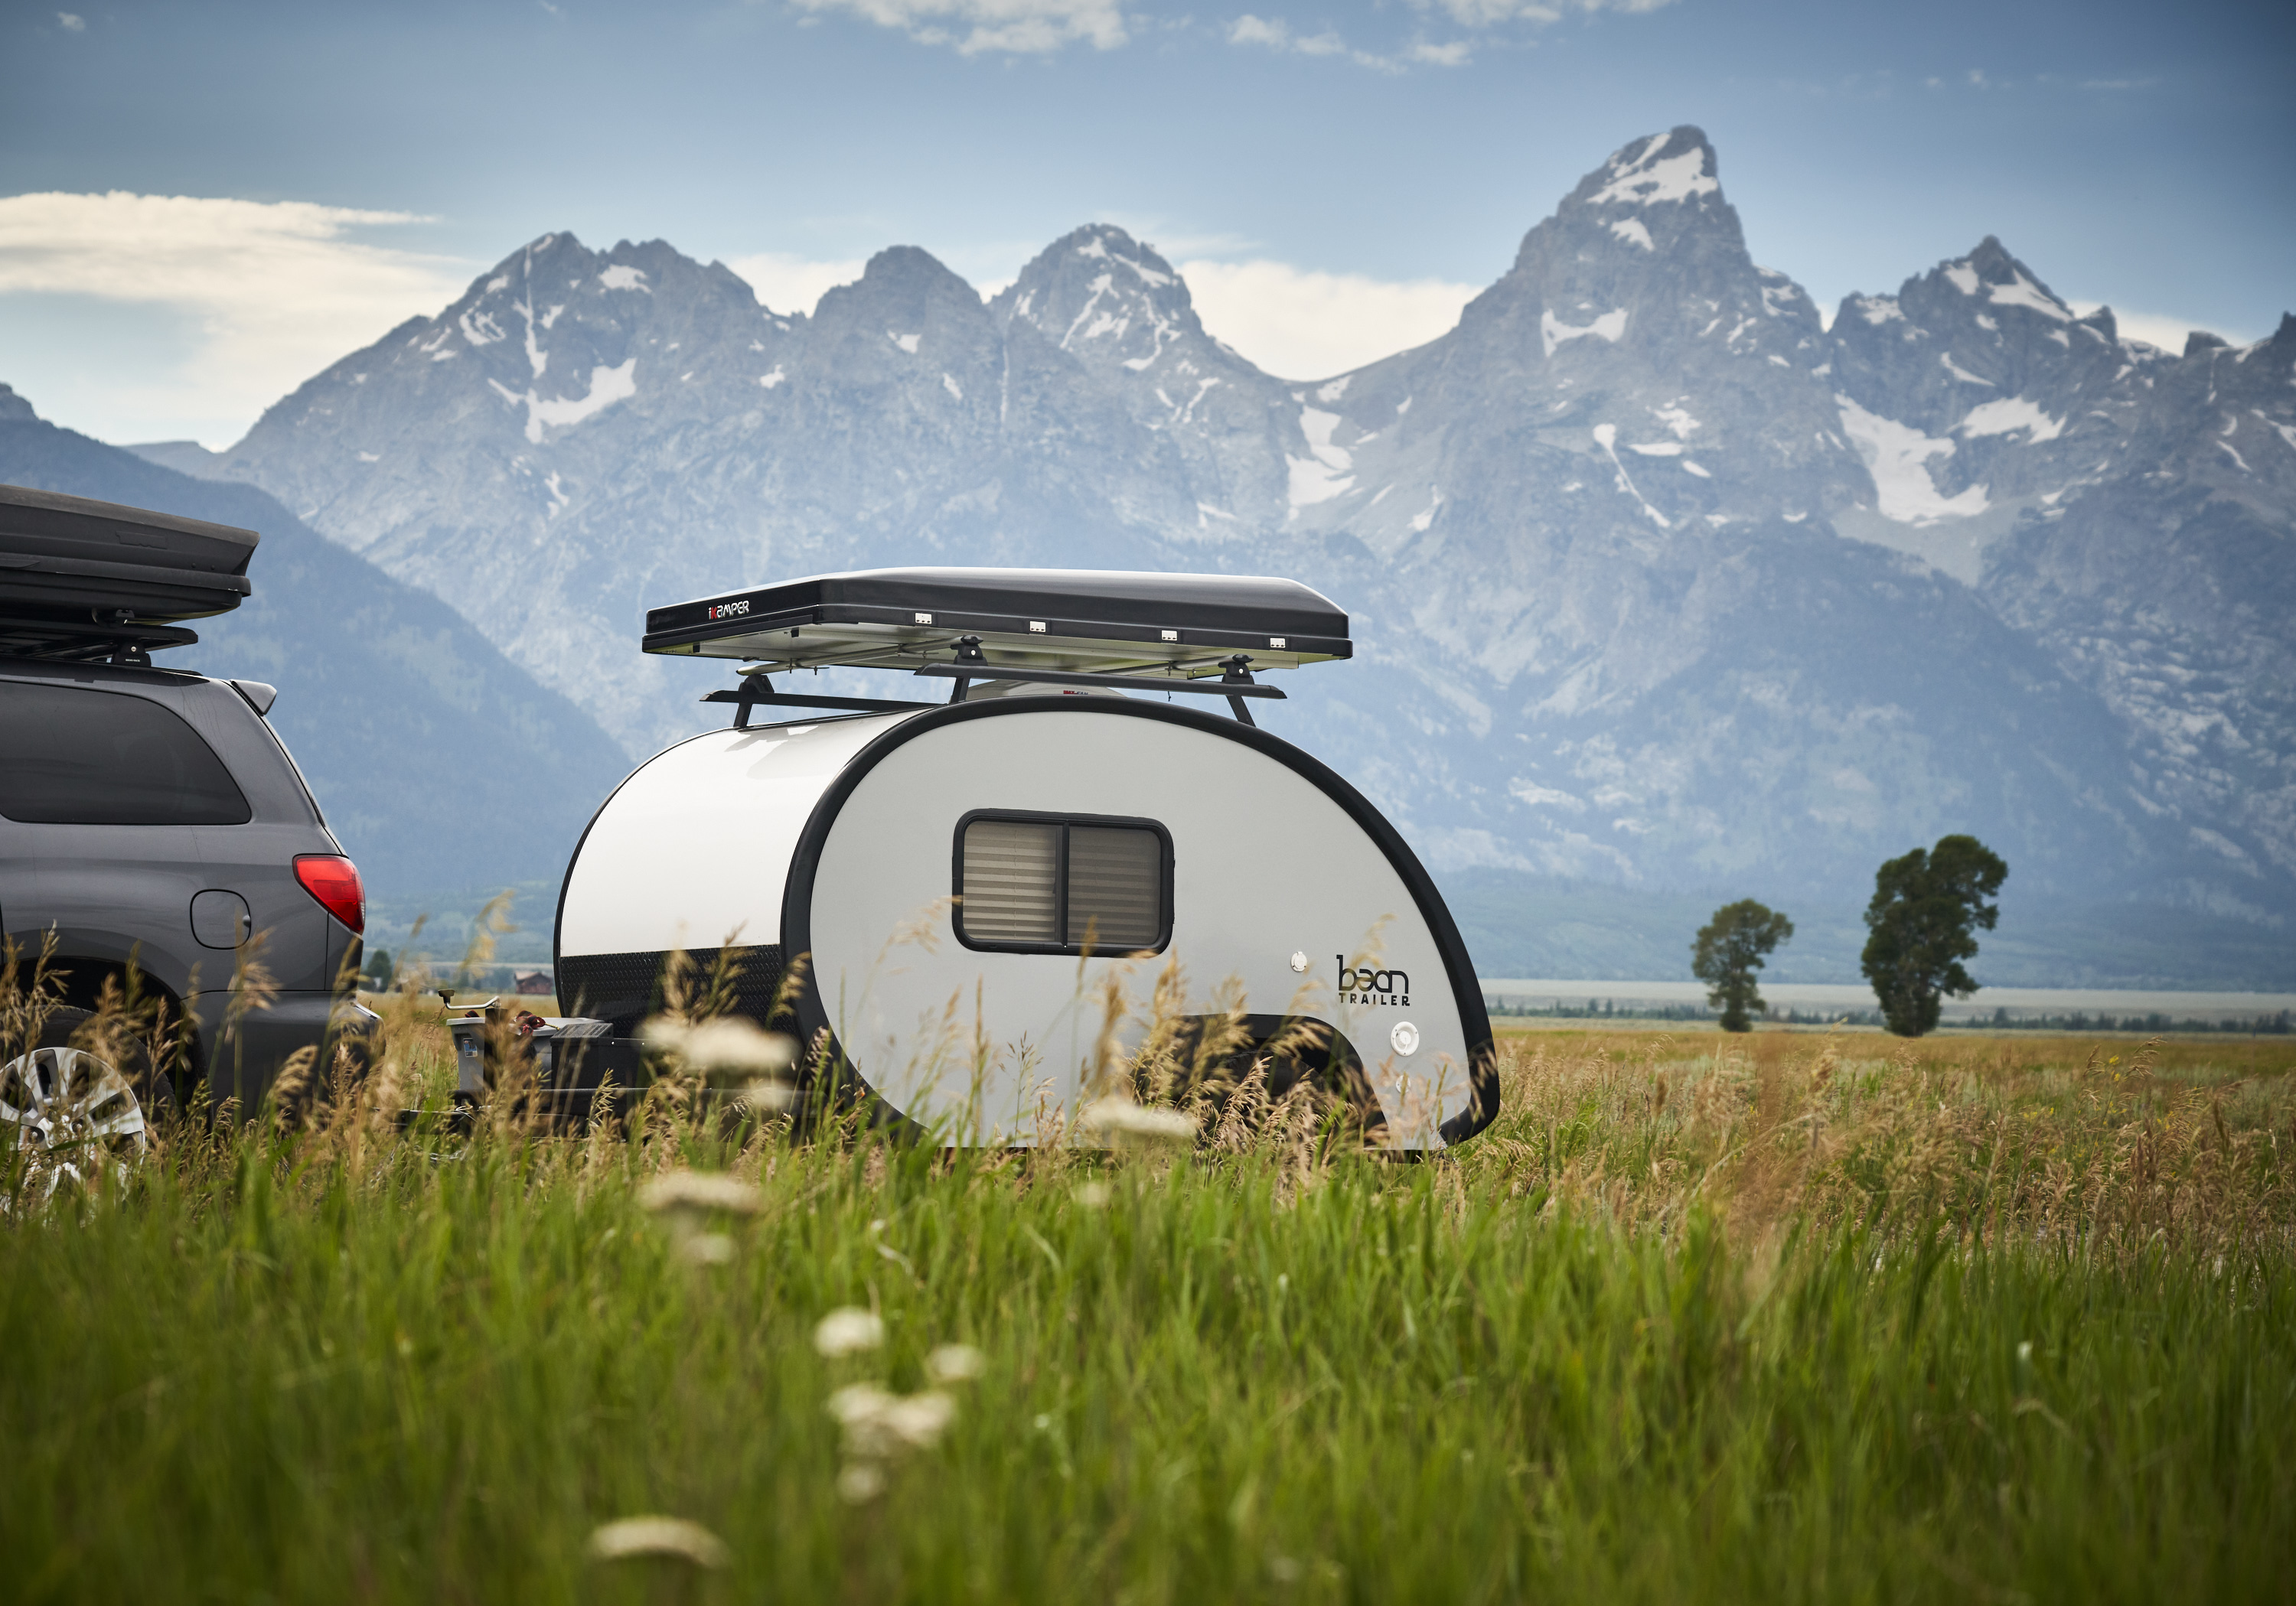 Bean Teardrop Trailers   The Coolector